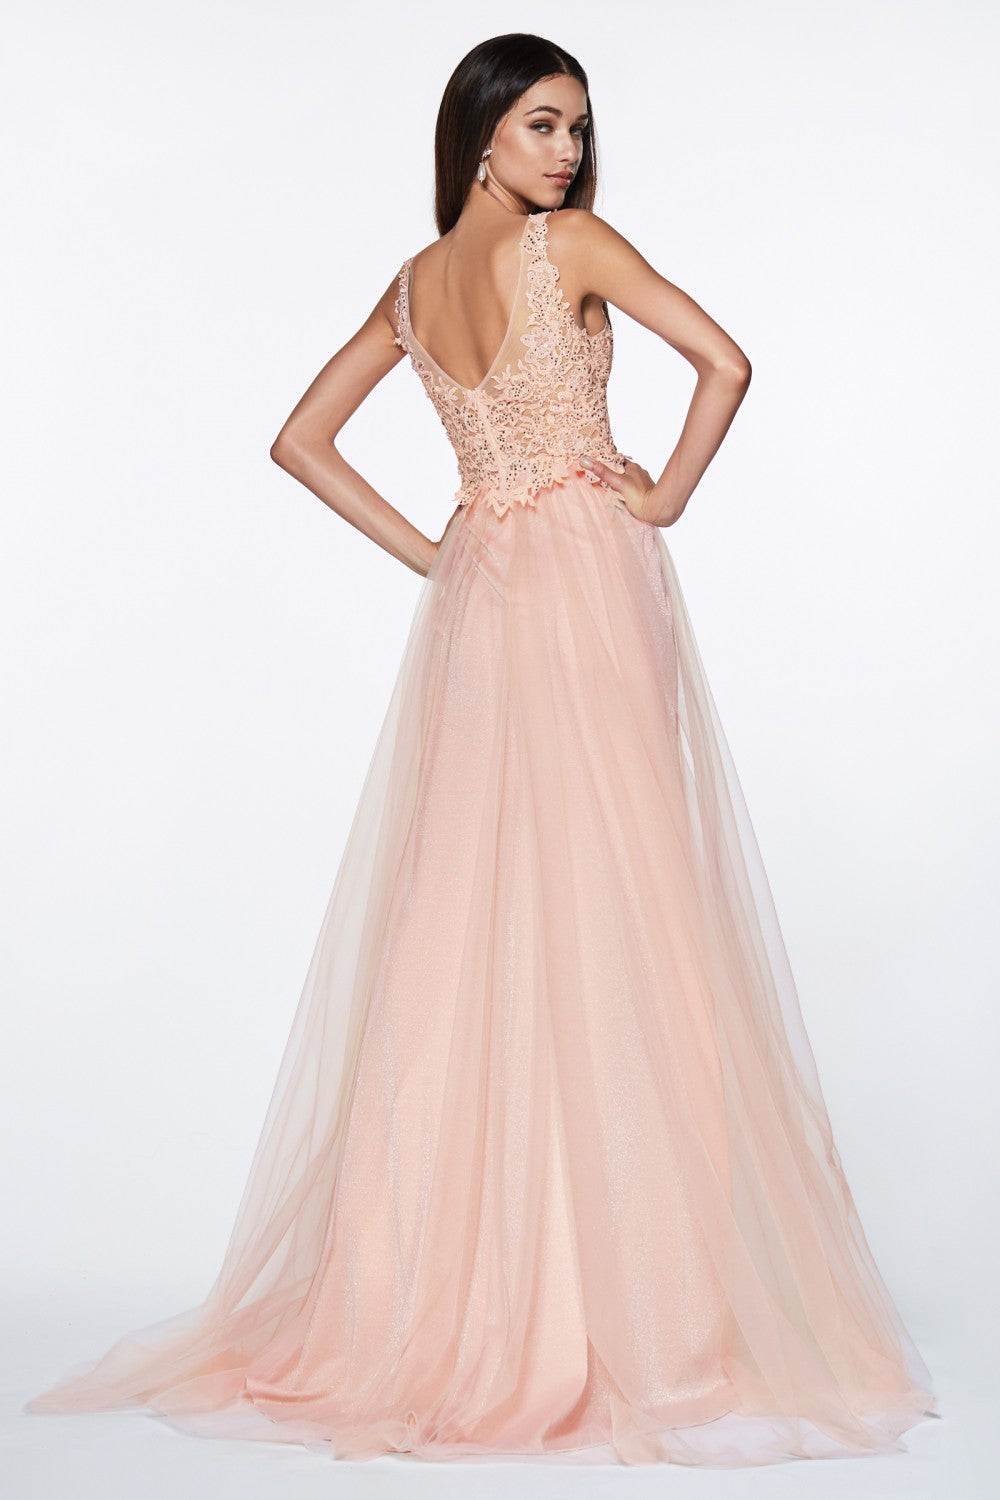 A-Line Tulle Gown With Jeweled Lace Bodice And Leg Slit